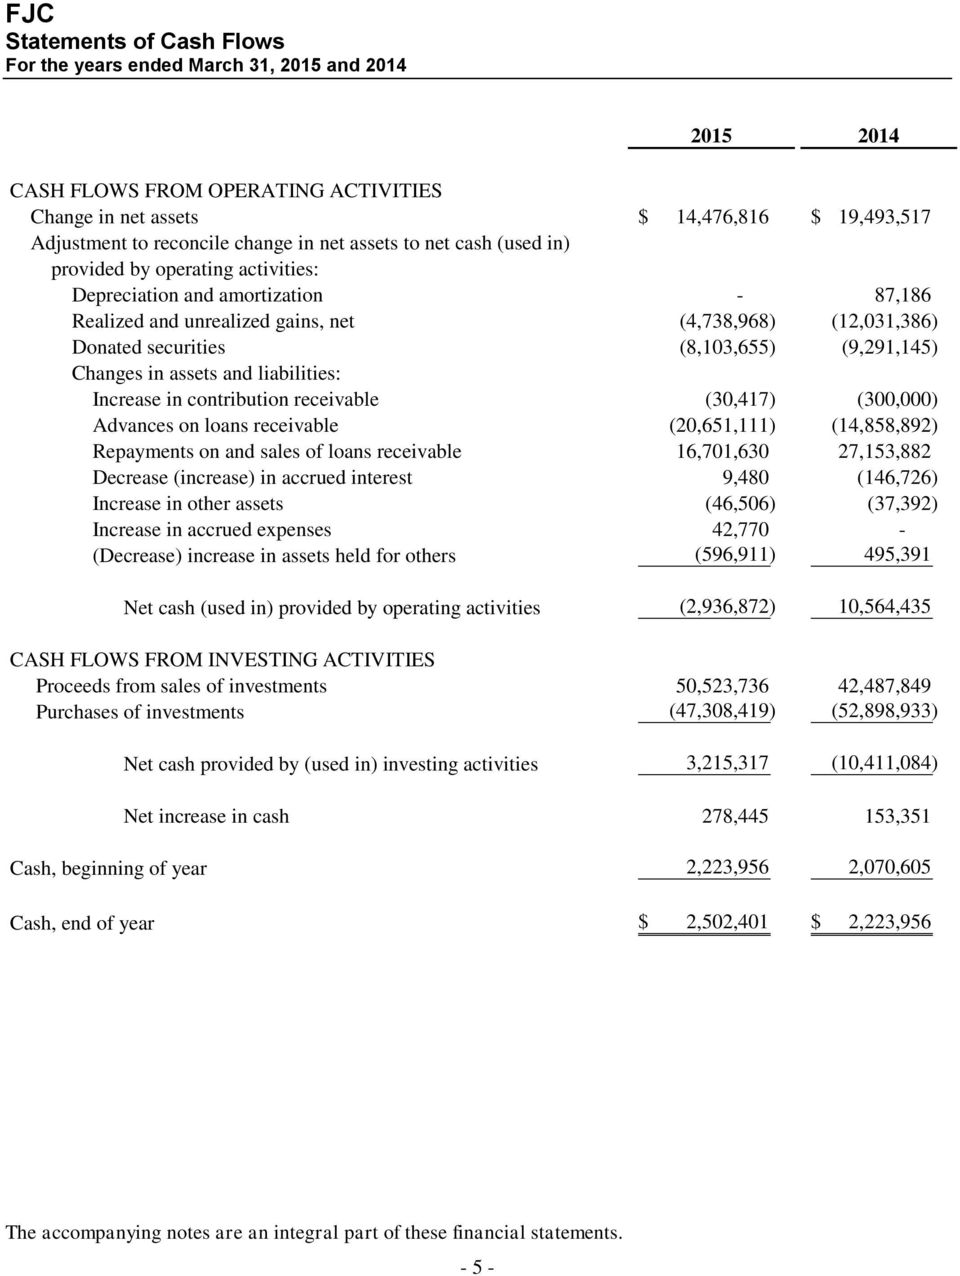 assets and liabilities: Increase in contribution receivable (30,417) (300,000) Advances on loans receivable (20,651,111) (14,858,892) Repayments on and sales of loans receivable 16,701,630 27,153,882